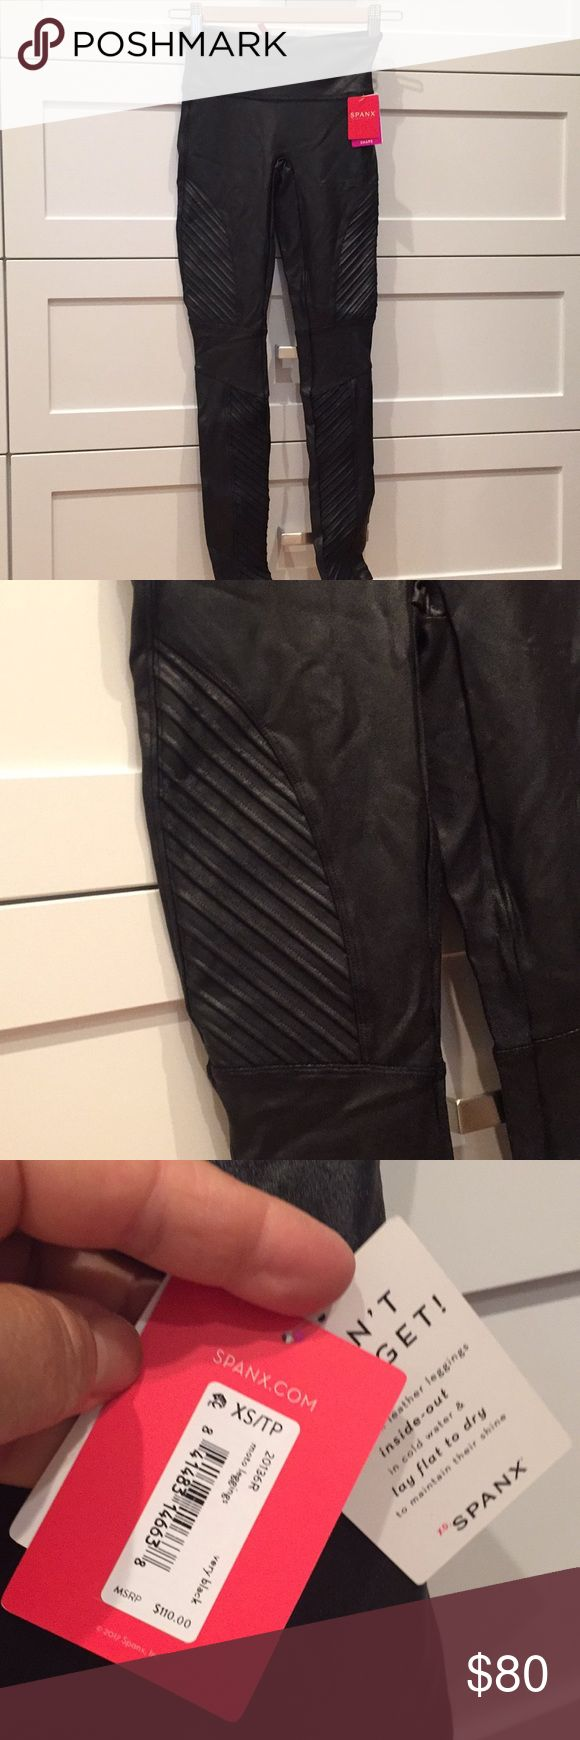 Faux leather Spanx. Size SX/TP. Never worn. New never worn. SPANX Other